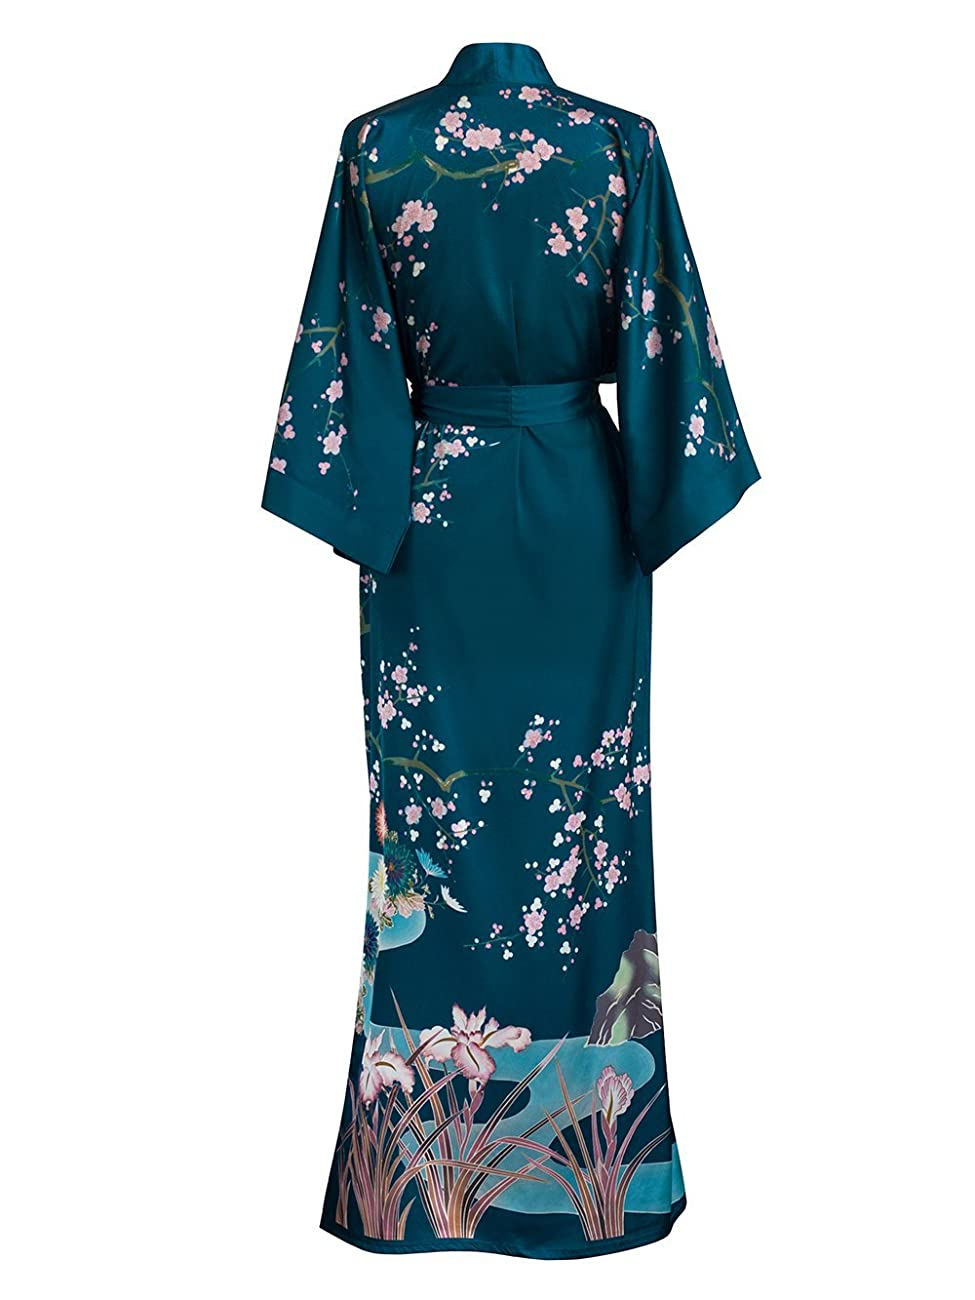 Old Shanghai Women's Kimono Robe Long - Watercolor Floral 1